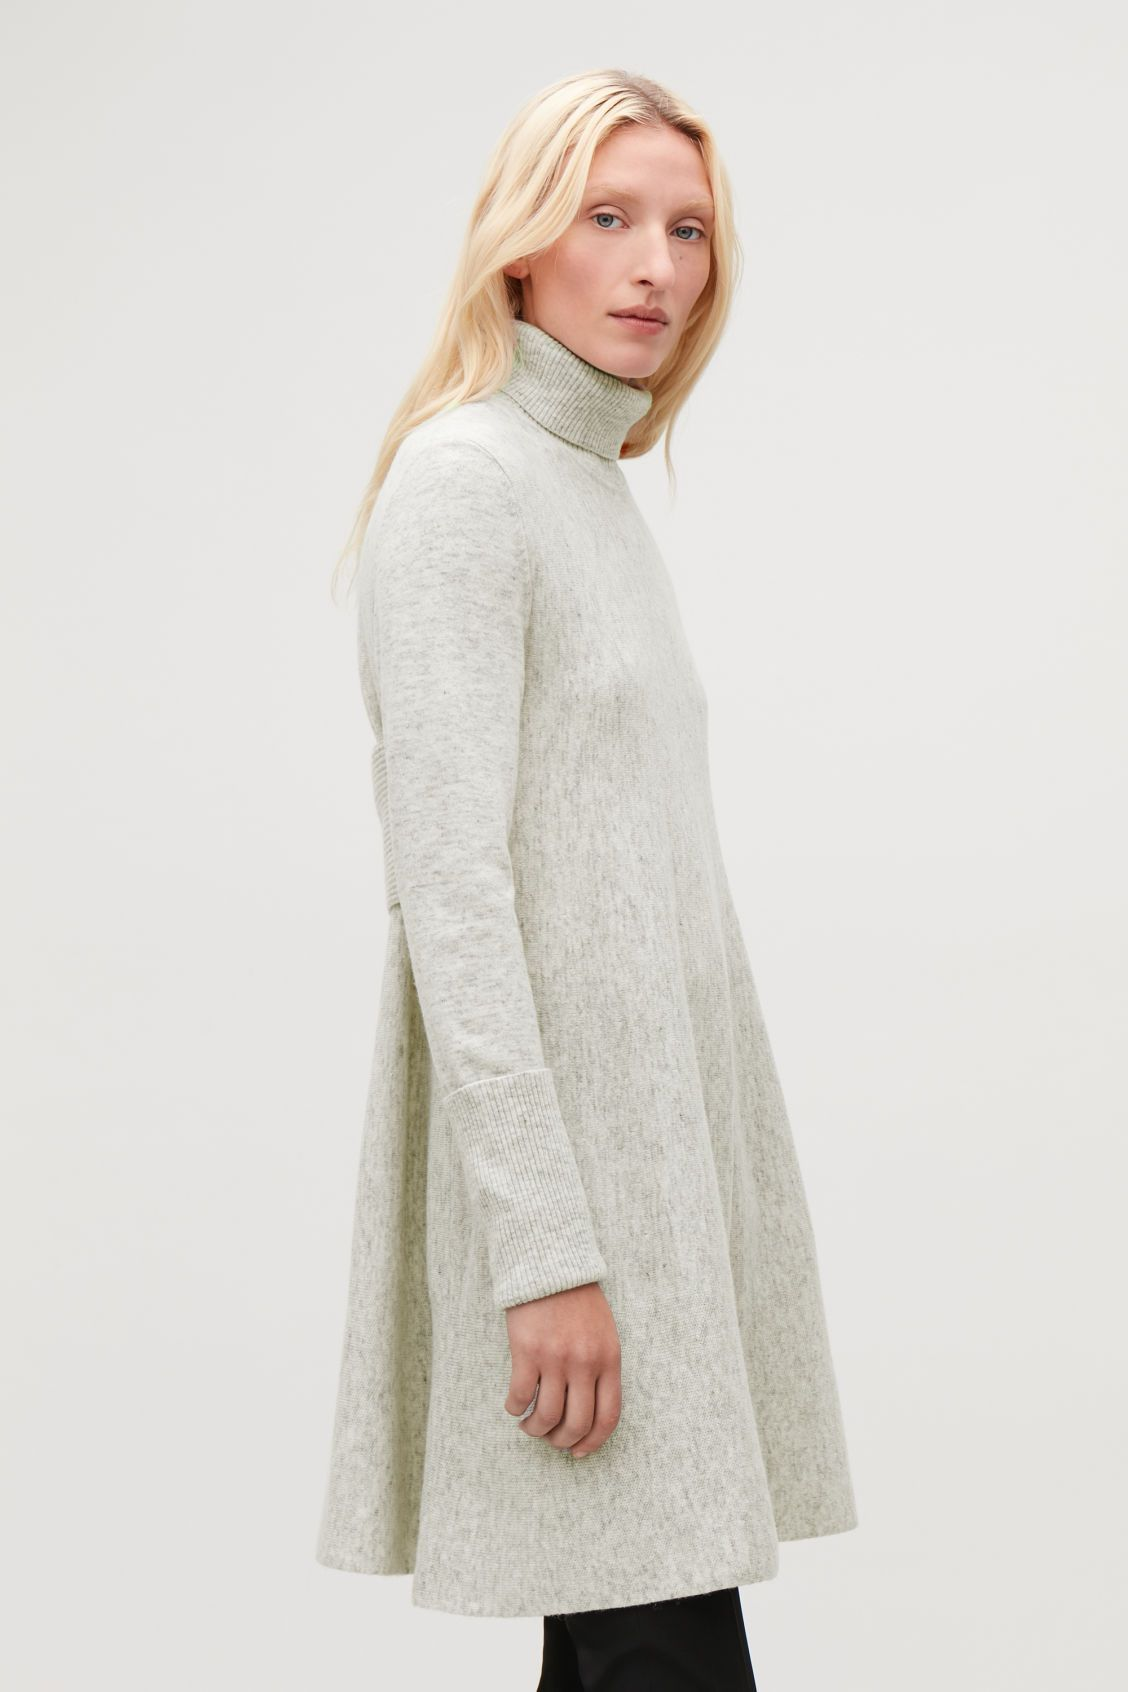 23 Sweater Dresses To Beat The Chill In This Winter Sweater Dress Dresses Turtleneck Sweater Dress